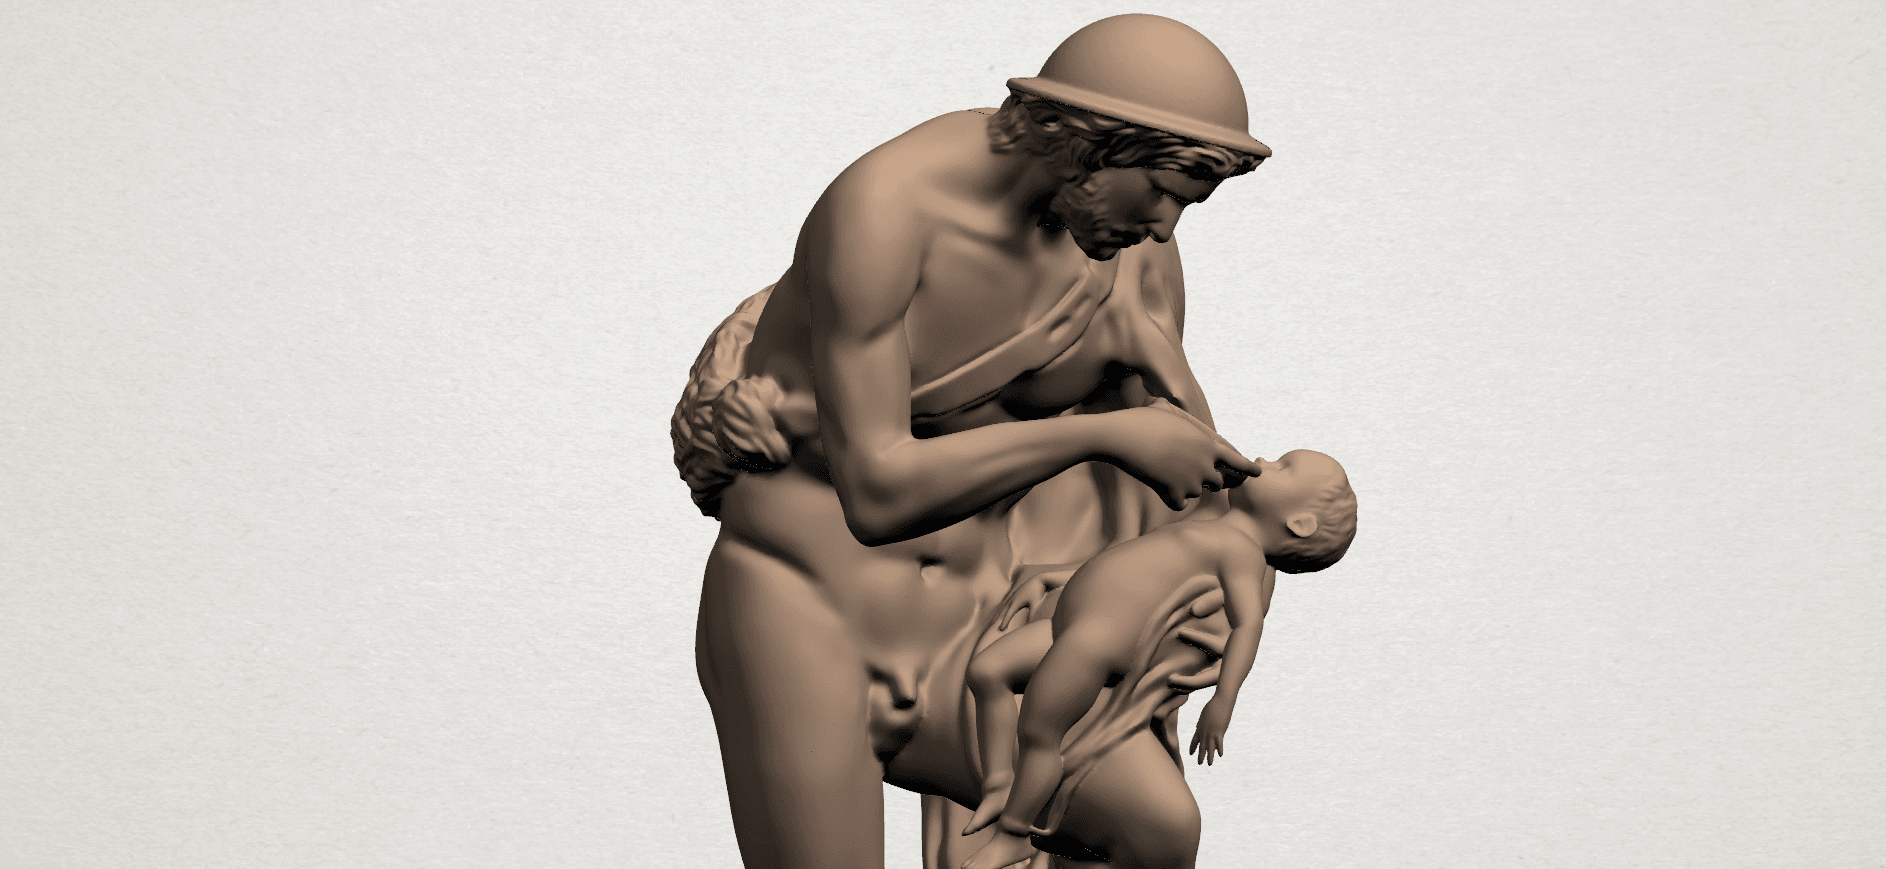 Father and Son (iii) A08.png Download free STL file Father and Son 3 • 3D print model, GeorgesNikkei